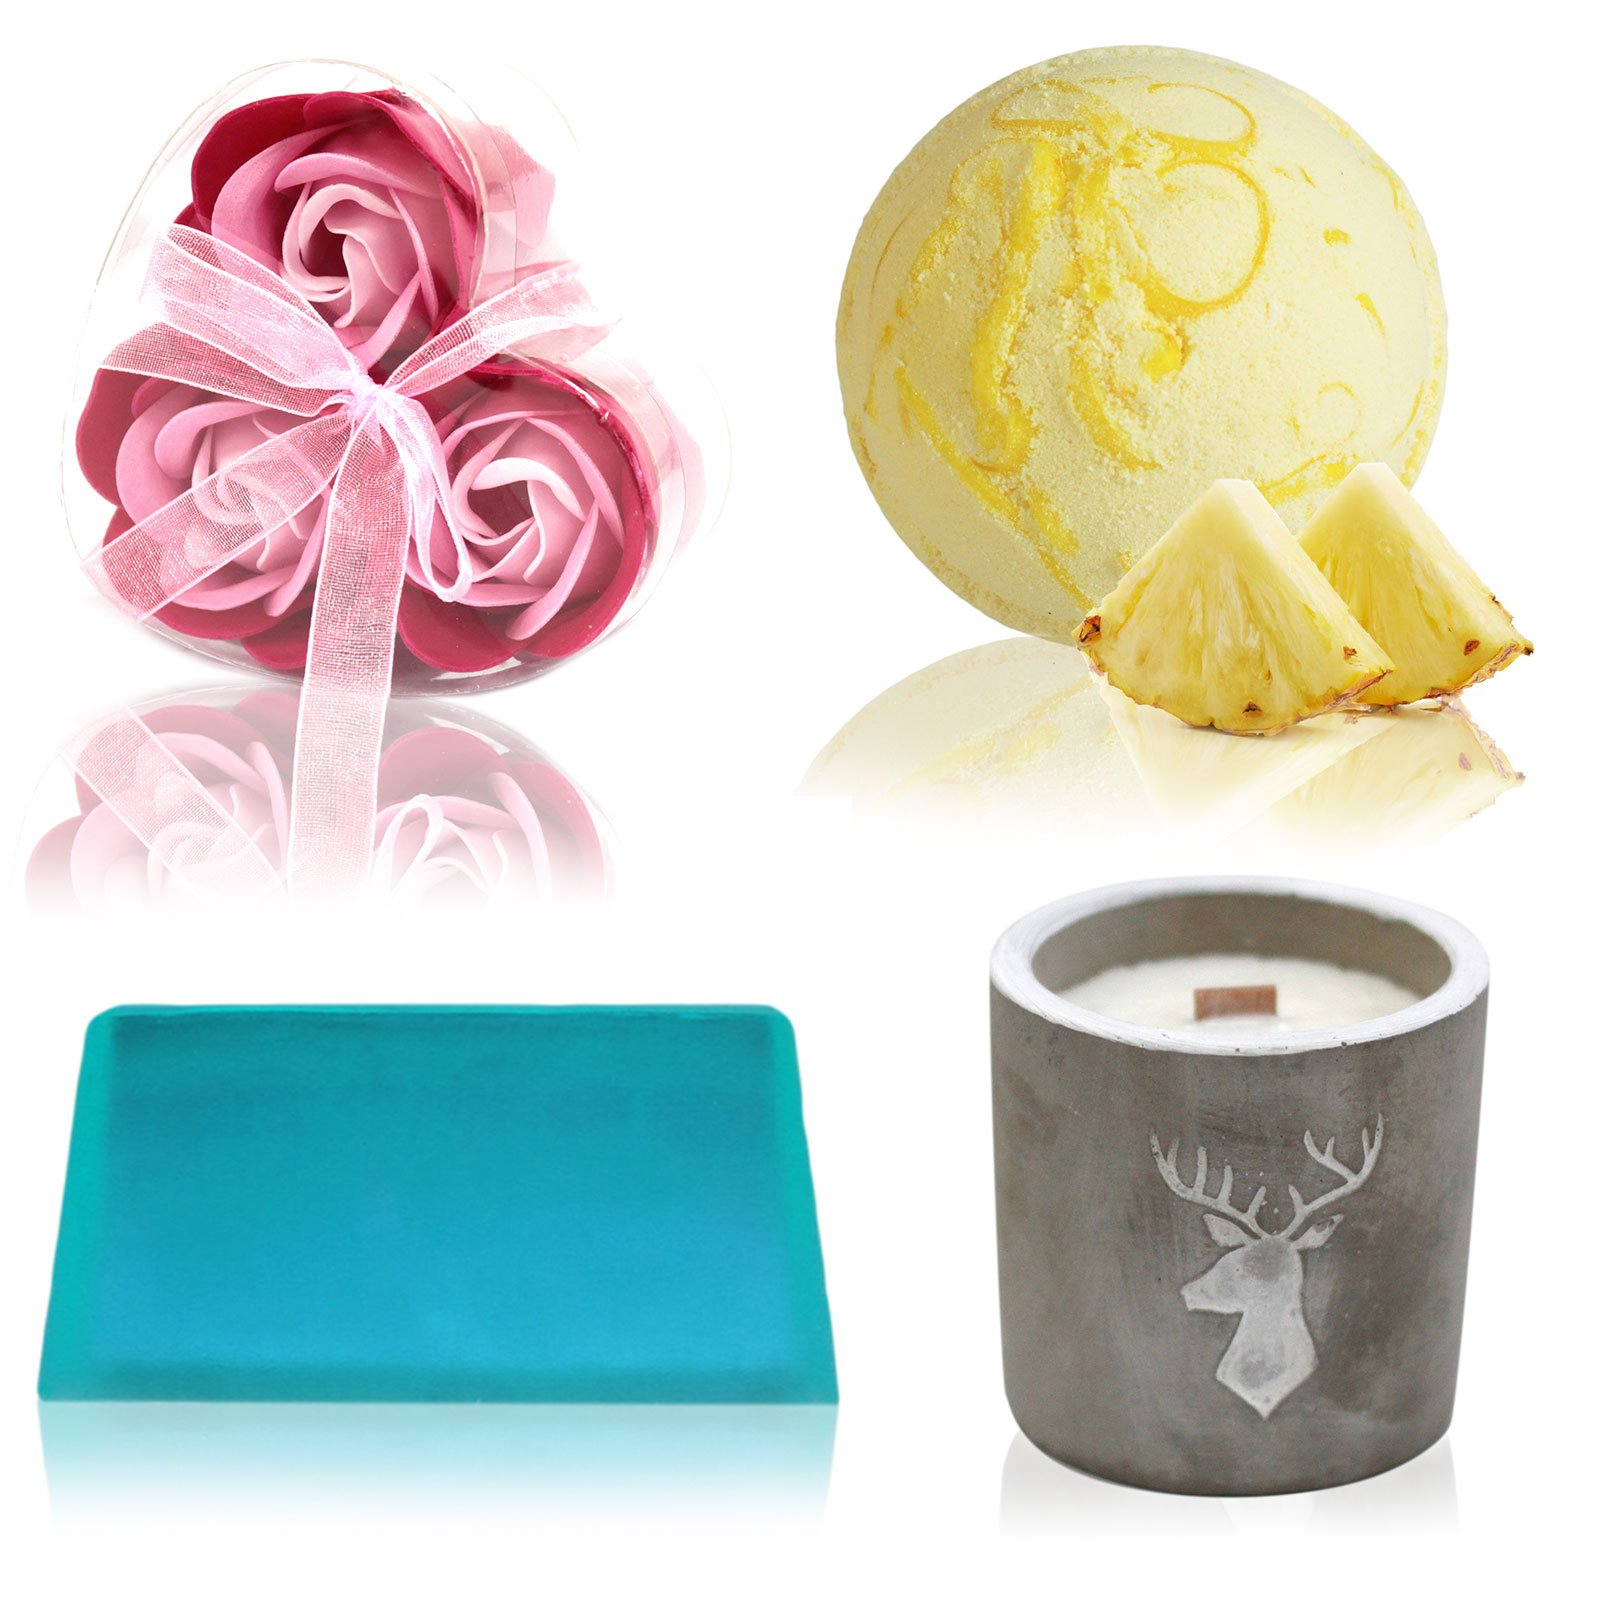 Bath Bomb Soap Flower Soap and Candle Treat Box